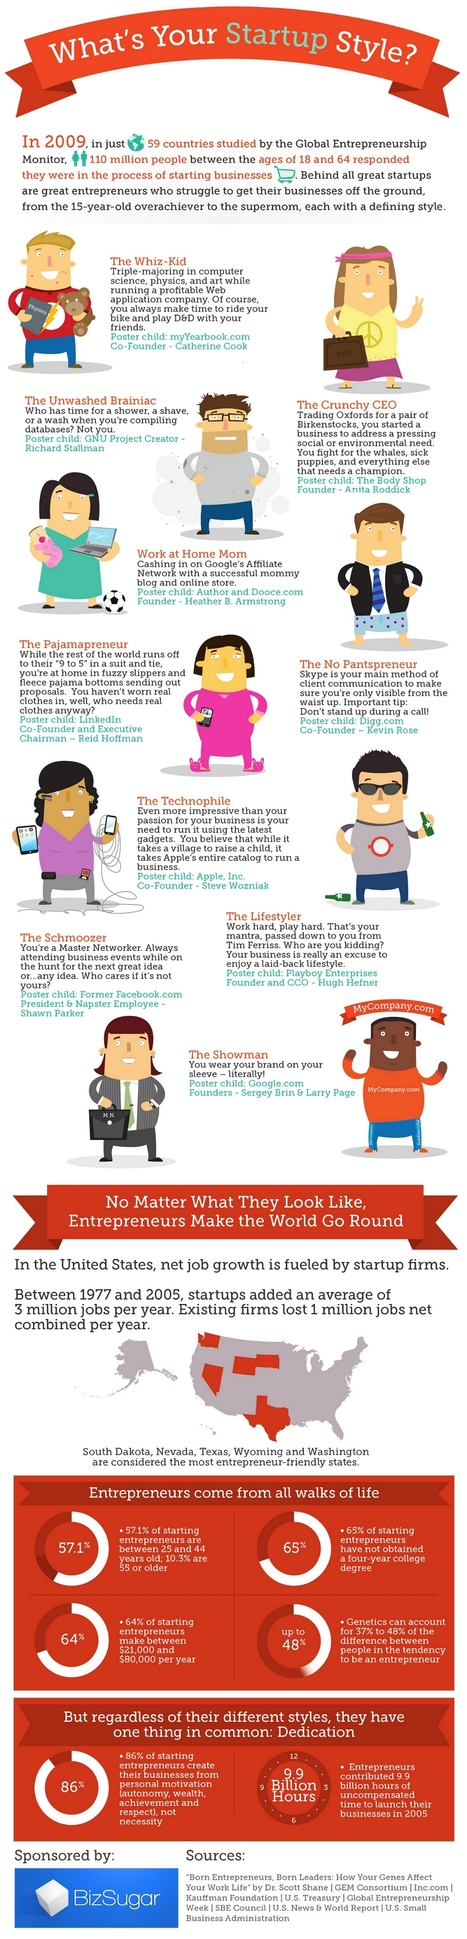 10 Entrepreneurial Styles: Which One Are You? [Infographic] | Personal development | Scoop.it